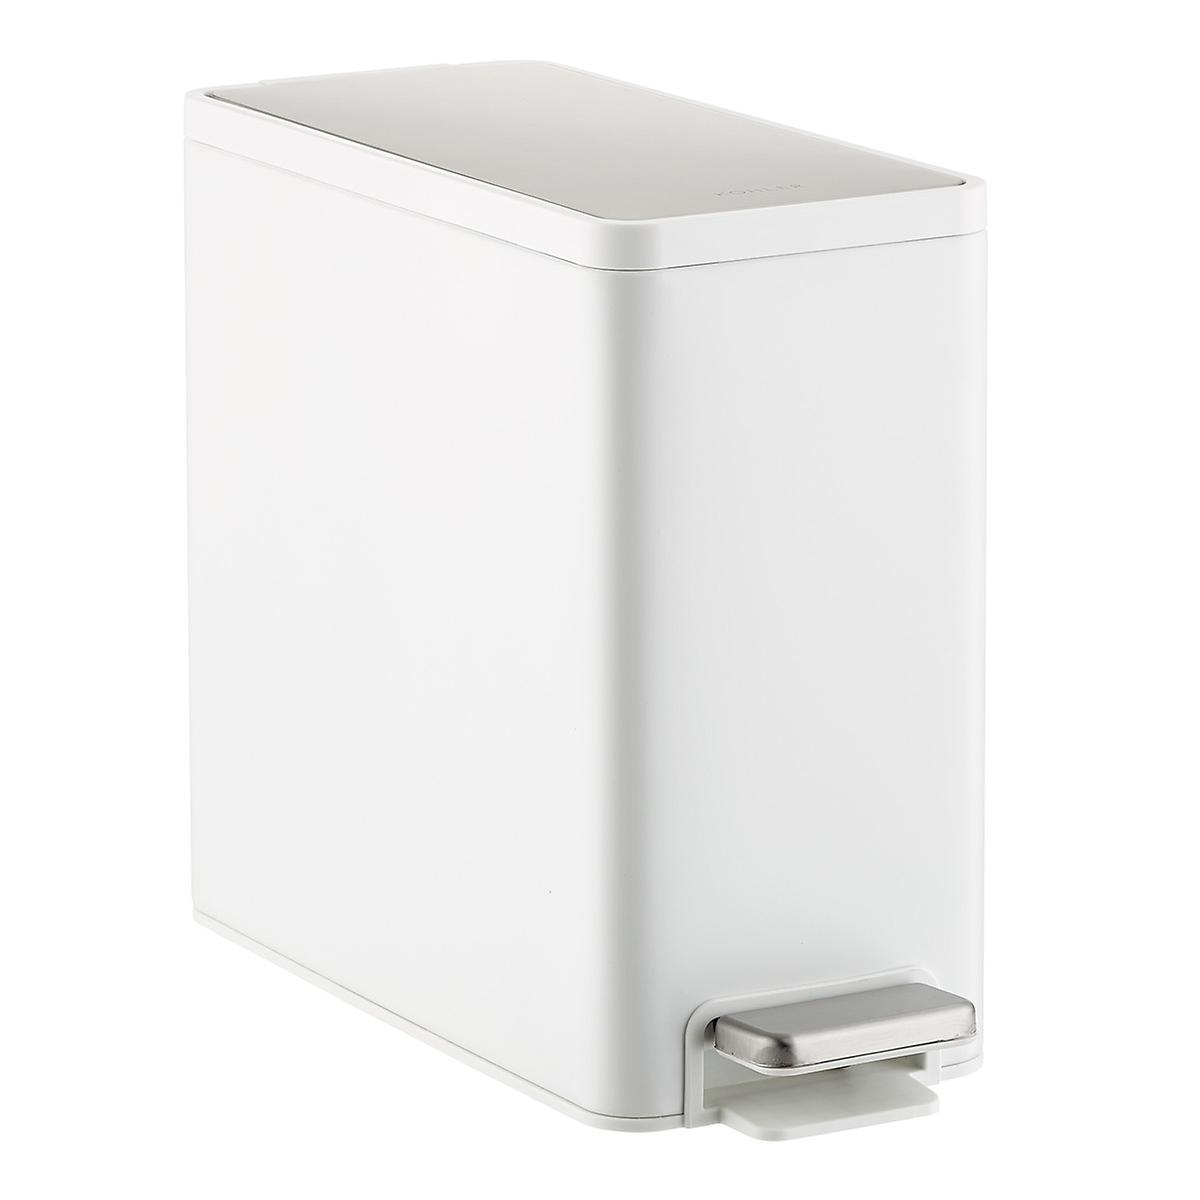 Kohler 2.5 gal. Slim White Stainless Steel Wastebasket